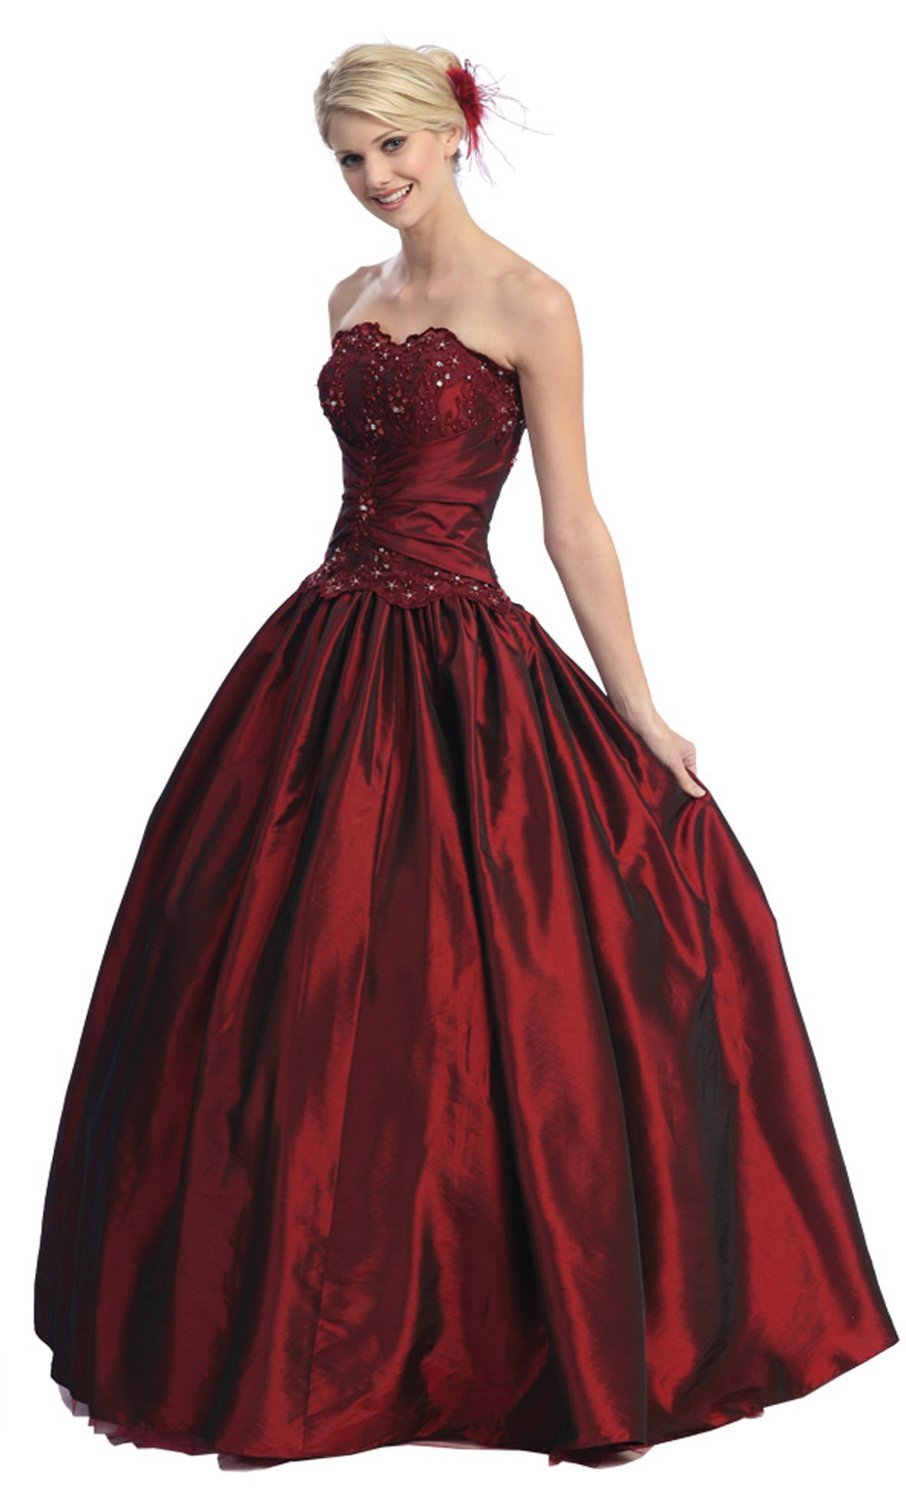 mkleone ball gowns wedding dresses evening wear